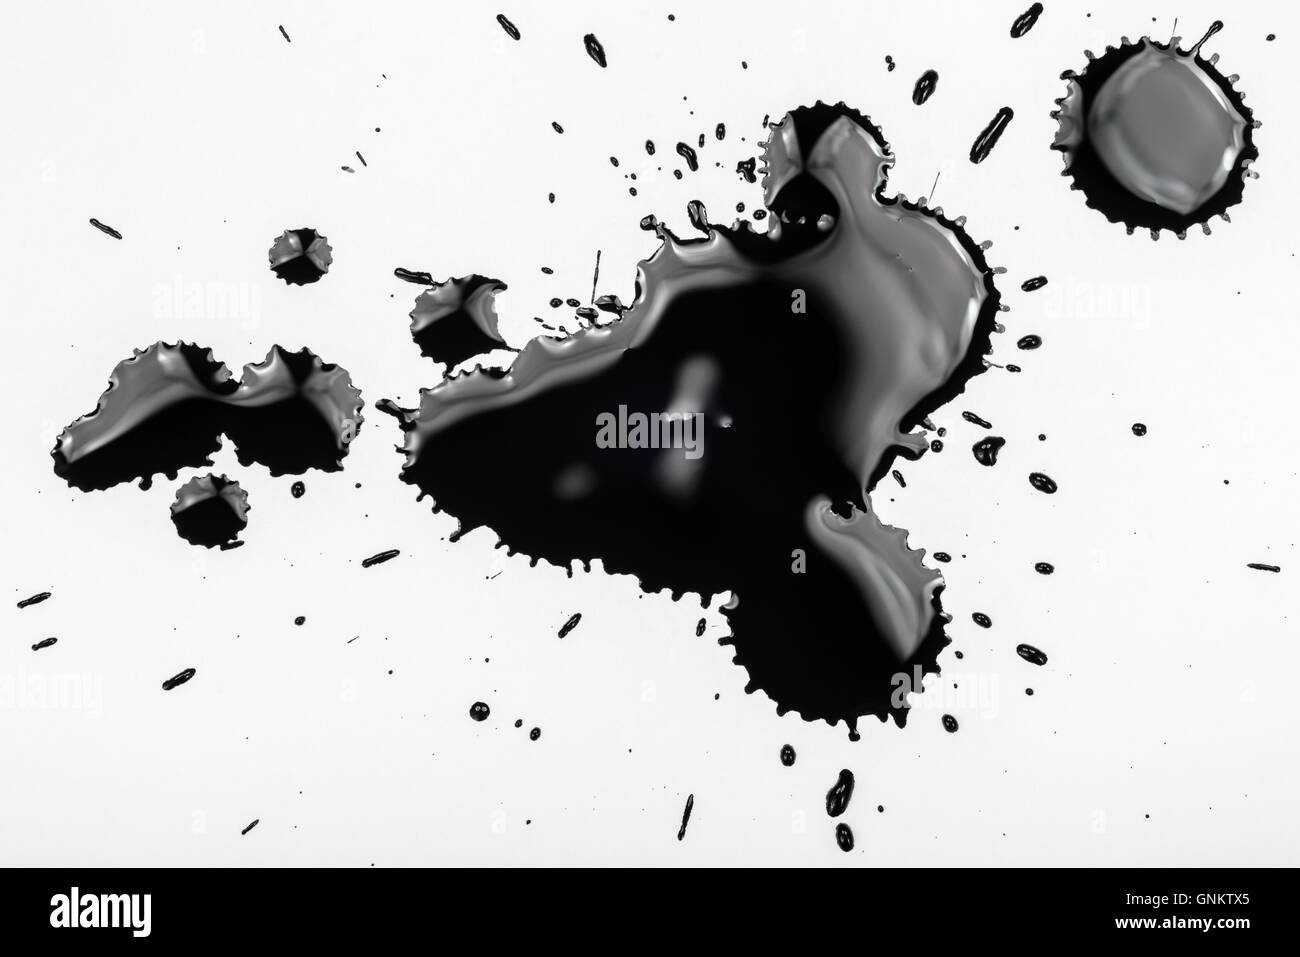 Black ink stains - Stock Image